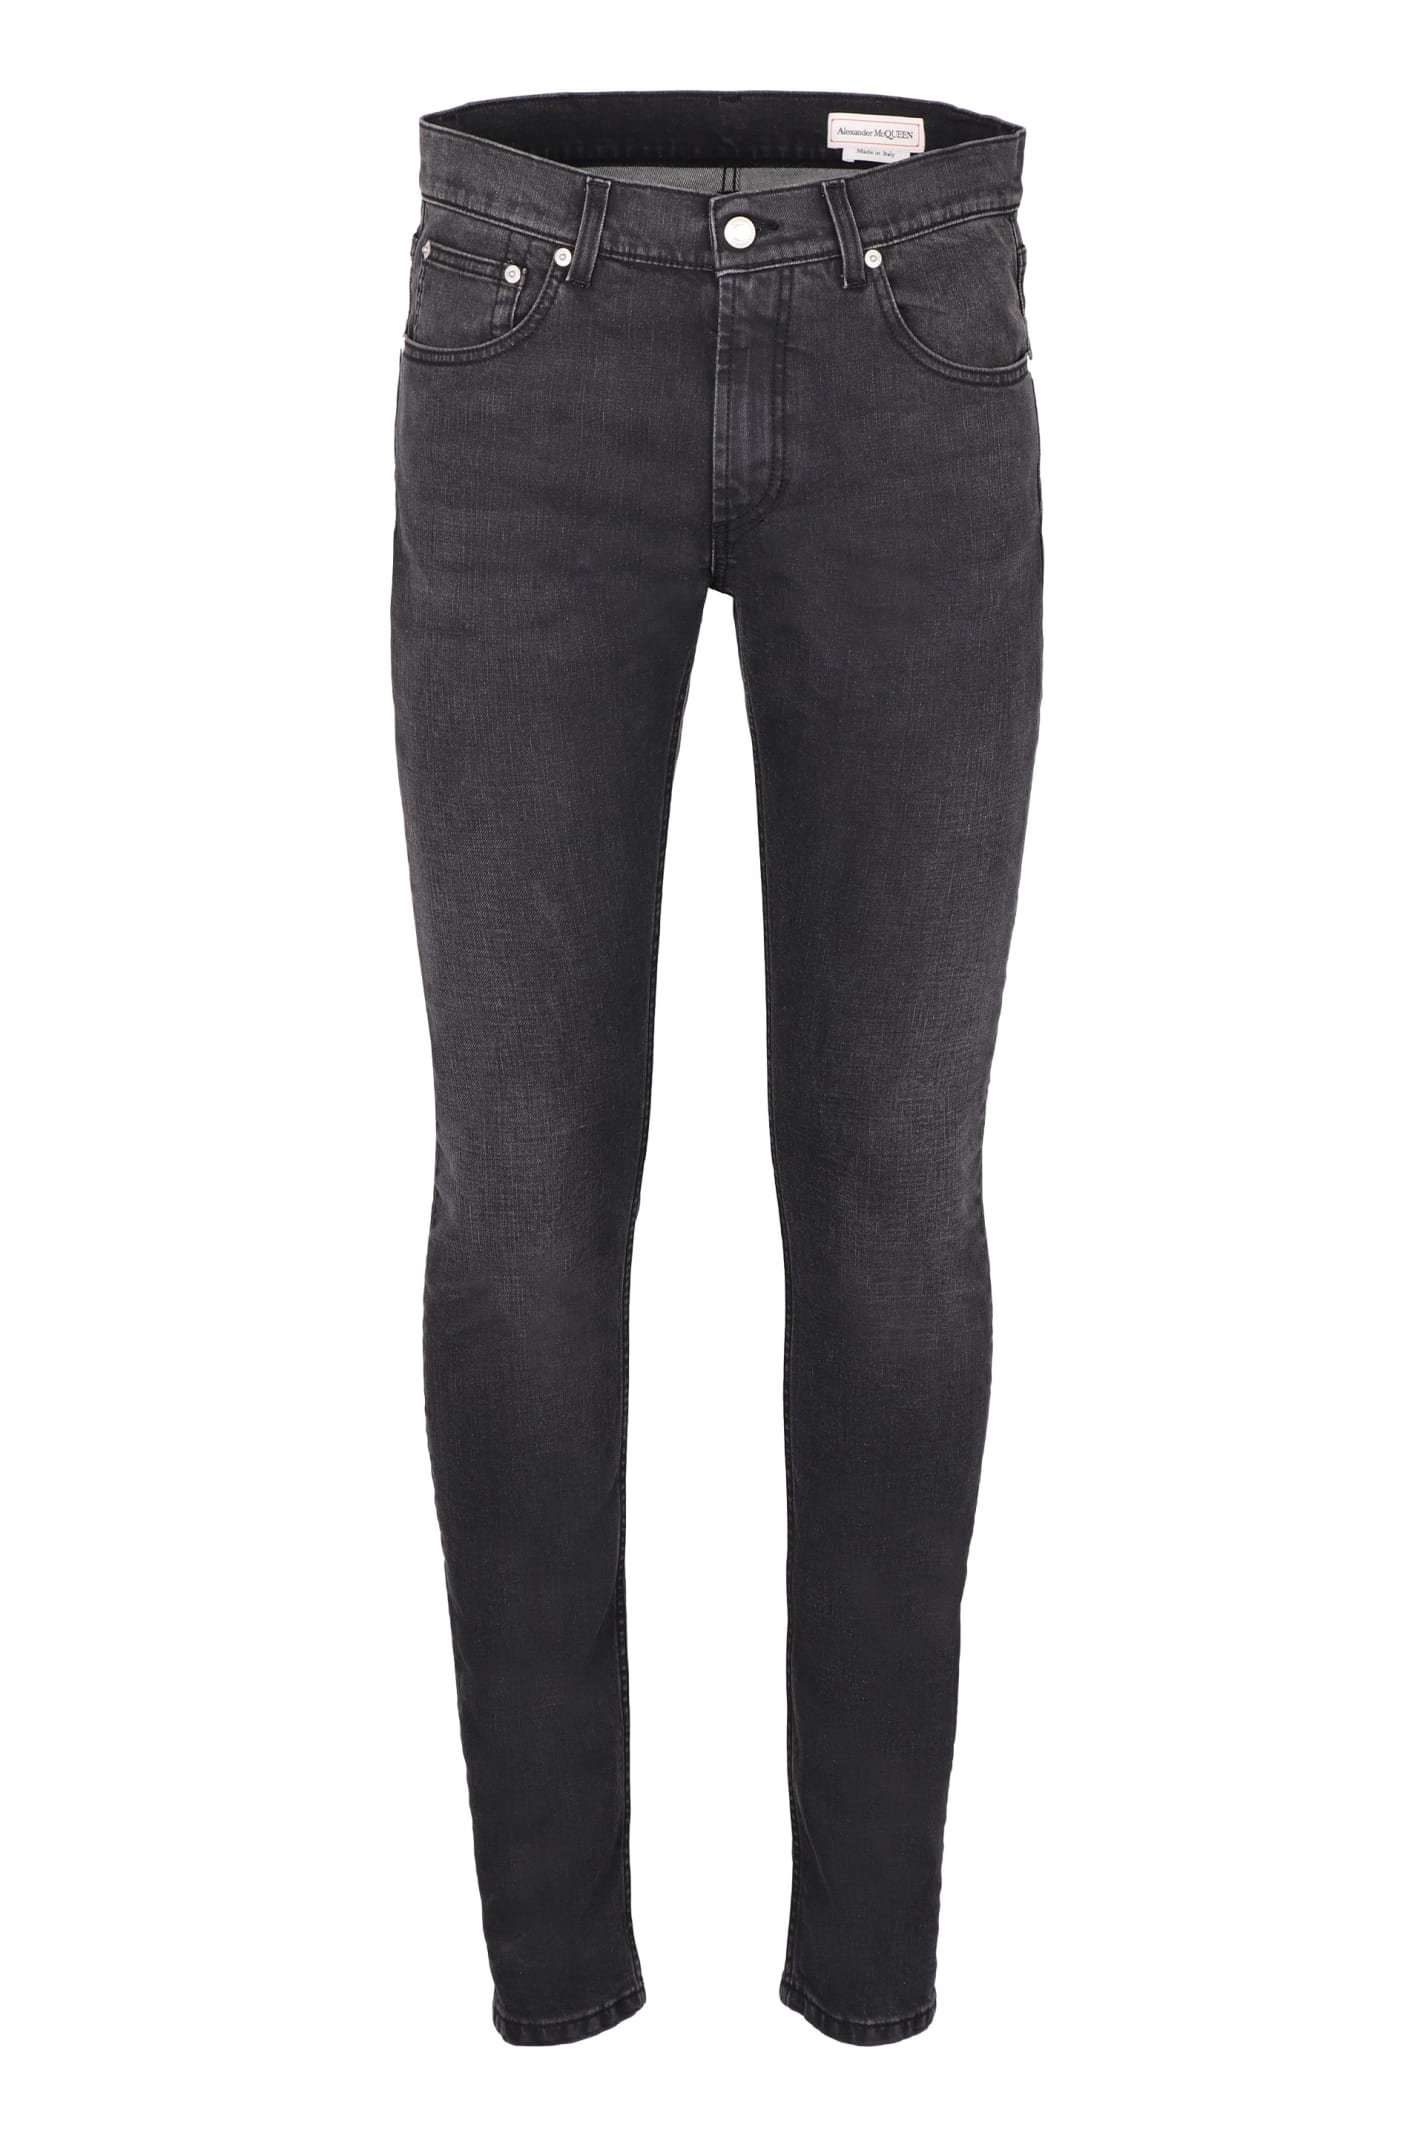 Alexander Mcqueen Straight jeans EMBROIDERED SLIM FIT JEANS